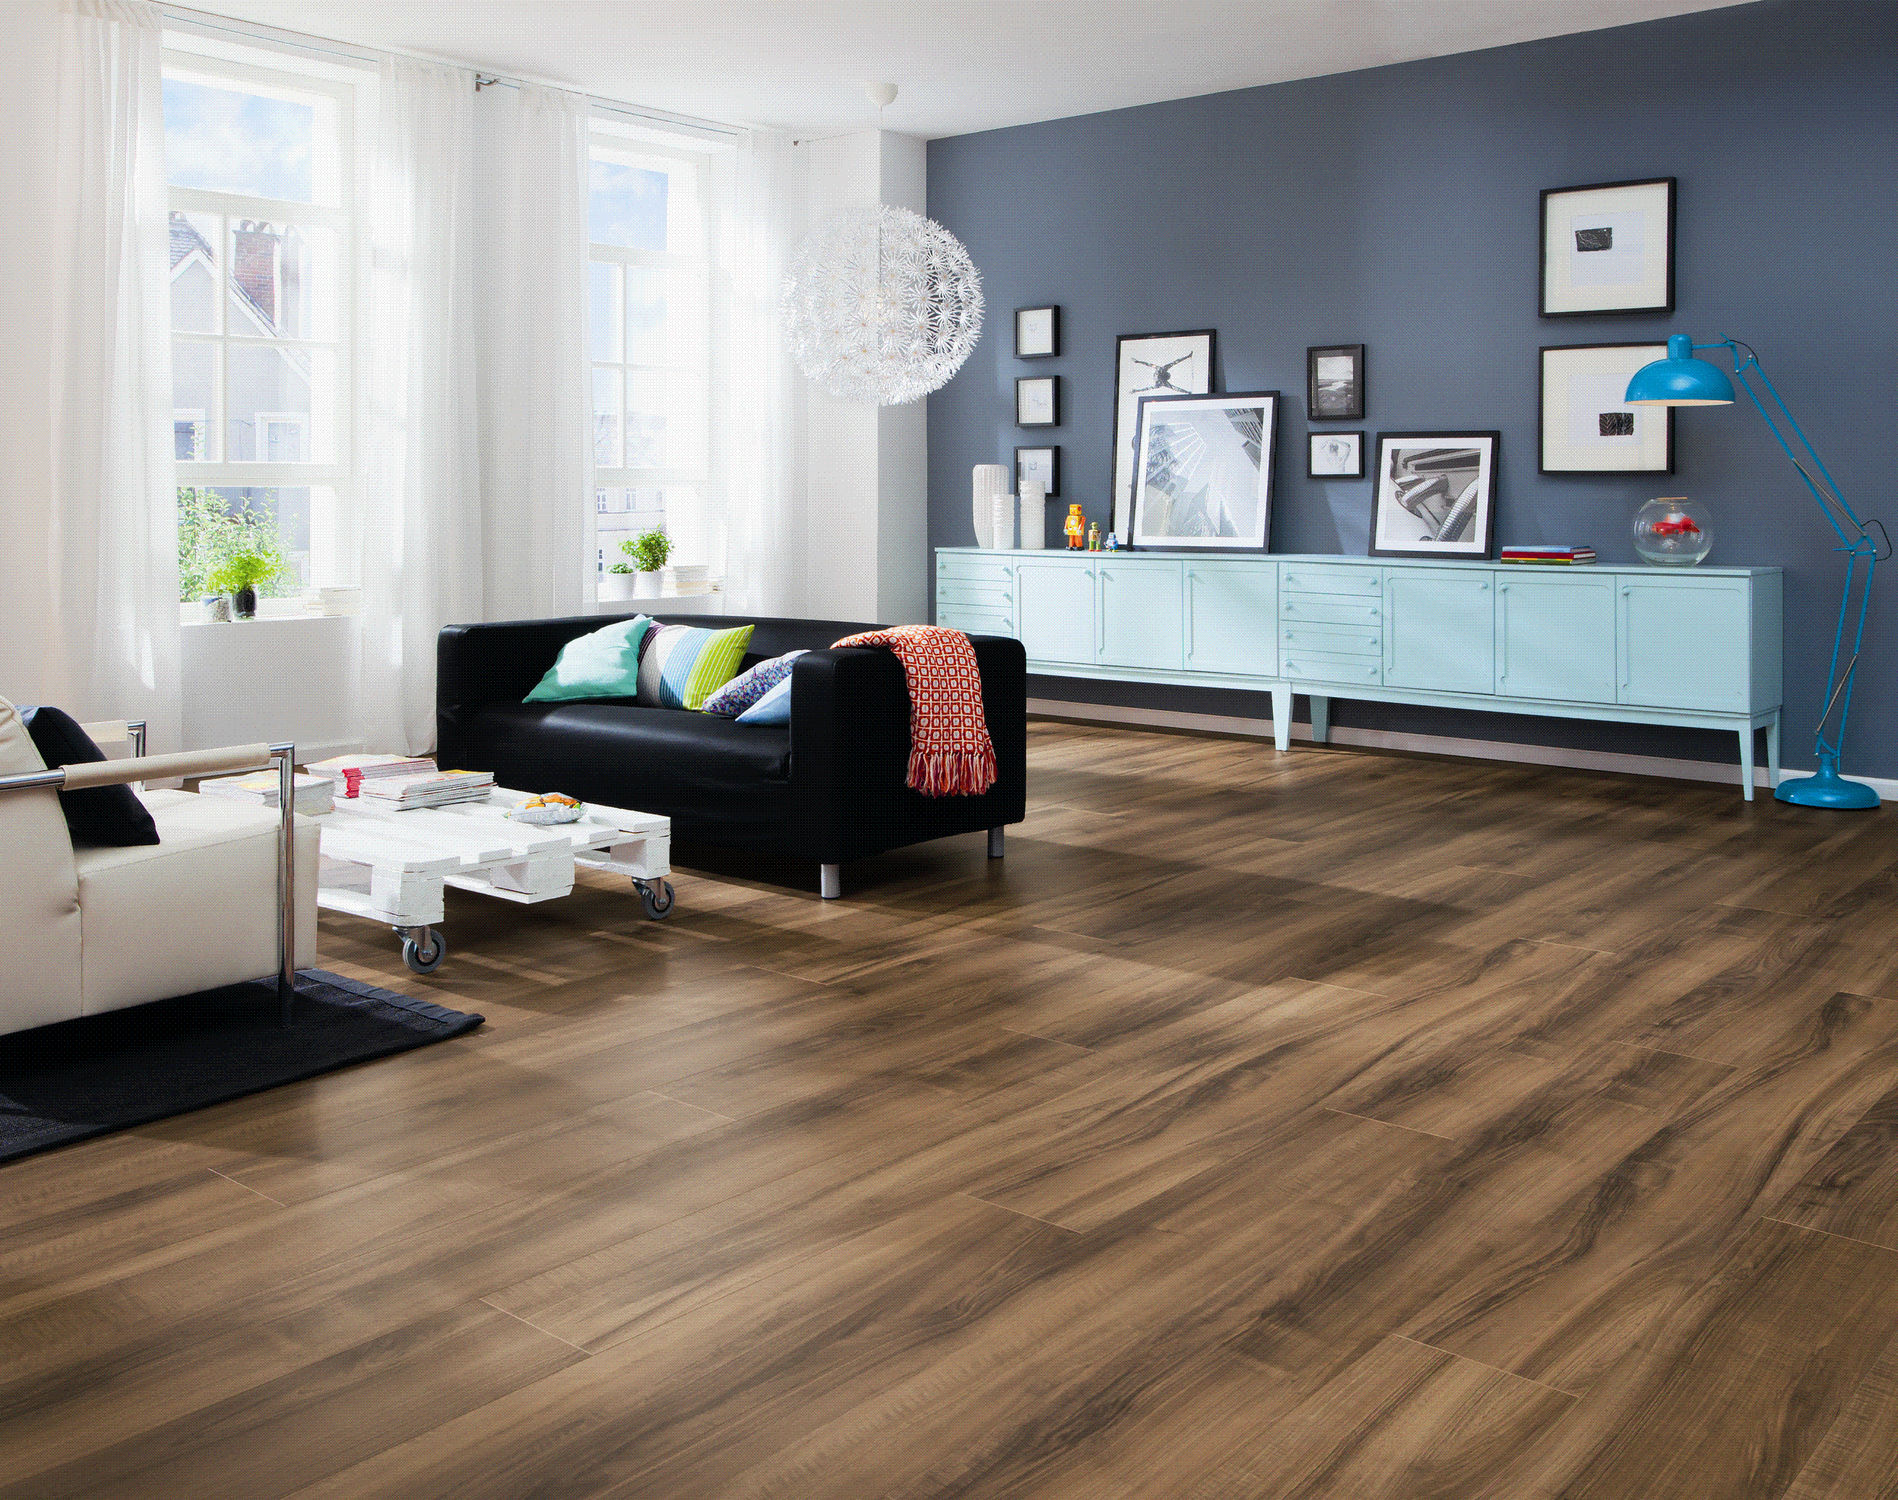 laminate flooring singapore 4 ways to choose the right laminate flooring NFQXWYE